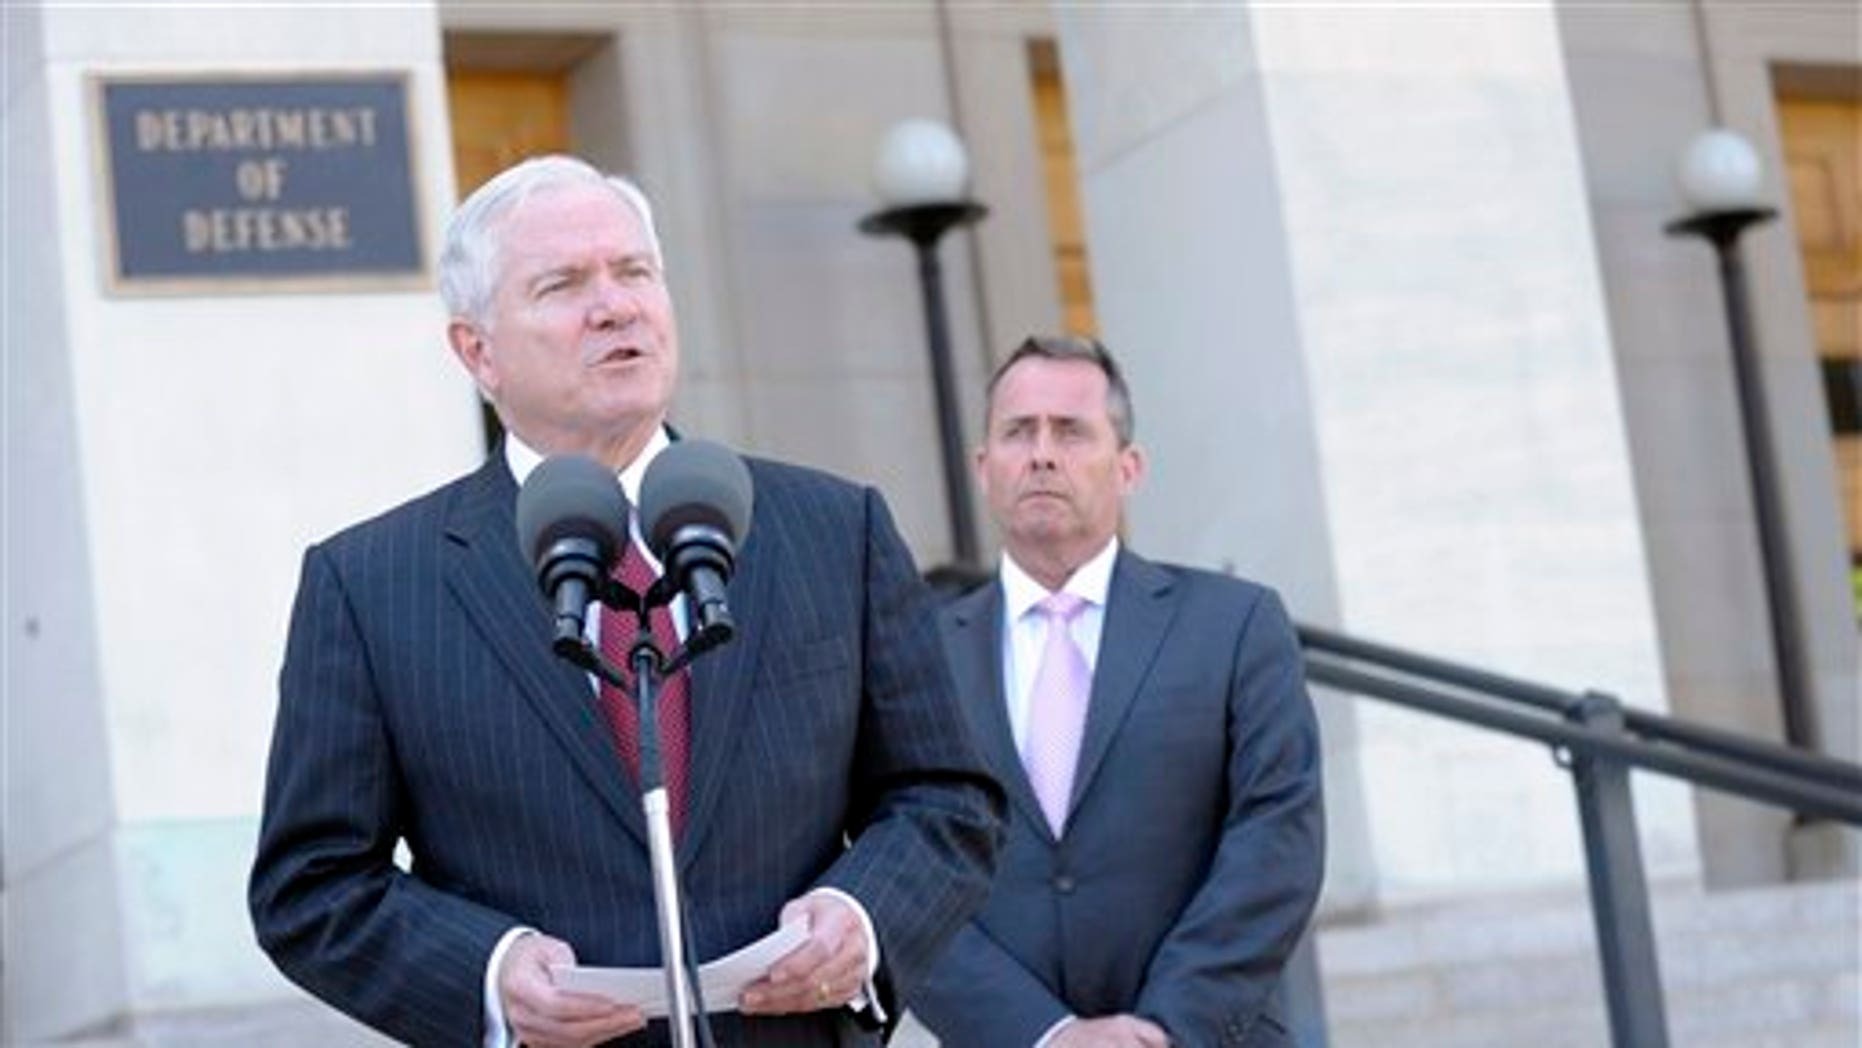 April 26: Defense Secretary Robert Gates, accompanied by British Defense Minister Liam Fox, speaks during joint statement at the Pentagon. (AP)